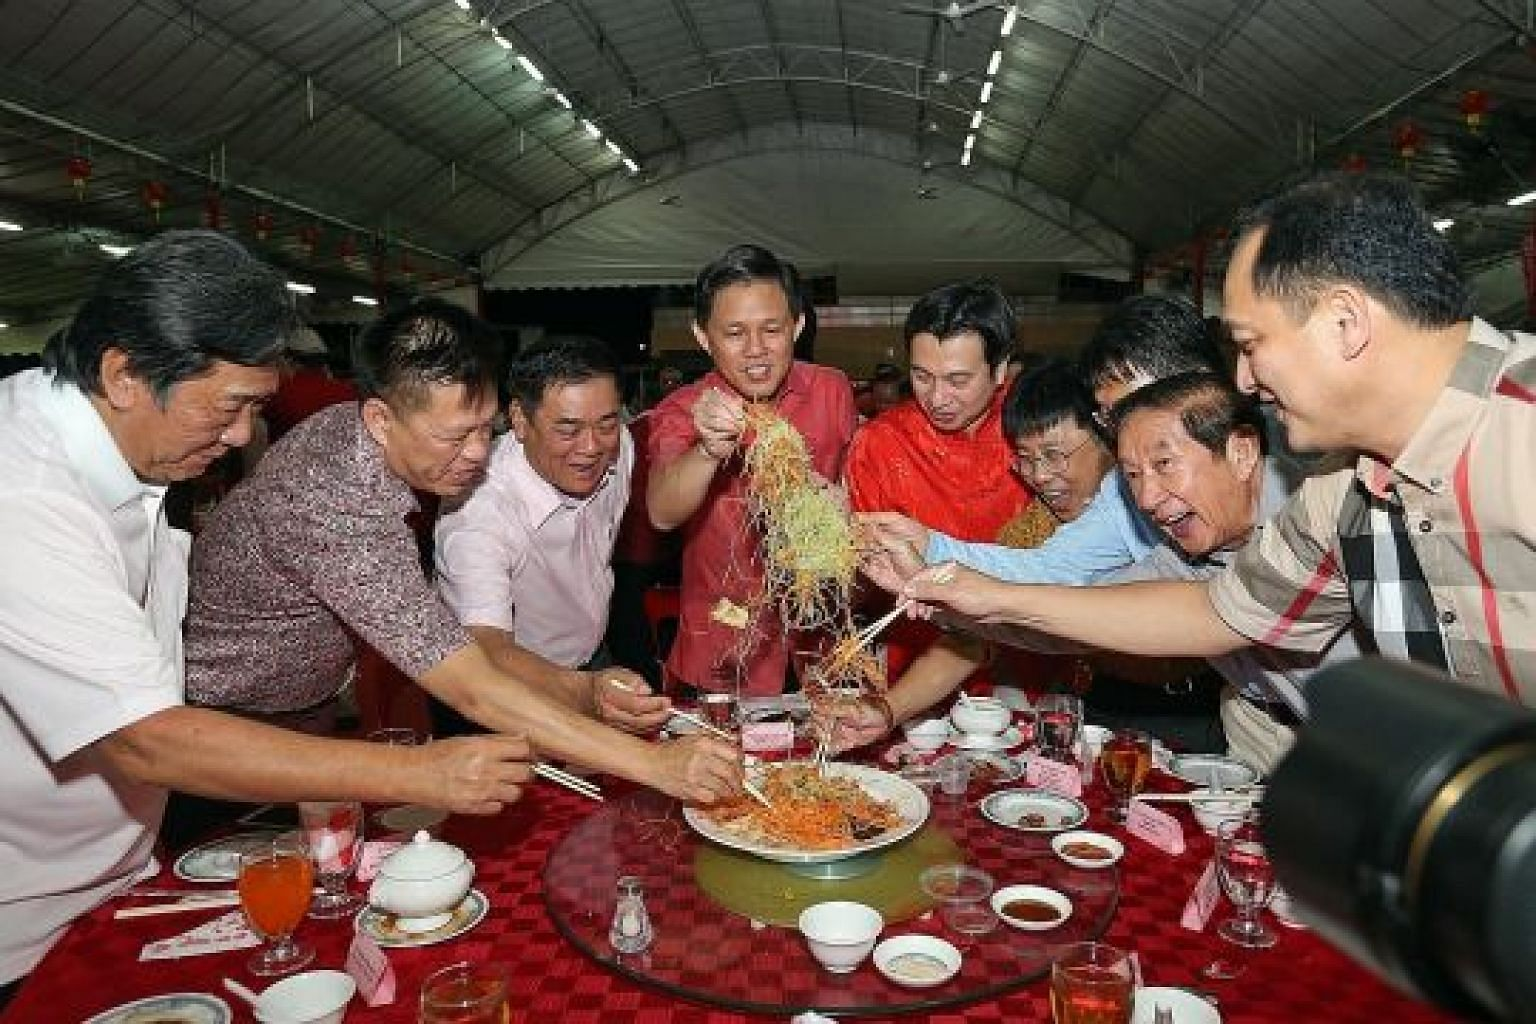 Minister in the Prime Minister's Office Chan Chun Sing (centre) and MP for Tanjong Pagar GRC Chia Shi-Lu (in red) join residents in lo hei at the annual Tanjong Pagar GRC and Radin Mas SMC Lunar New Year Dinner yesterday.